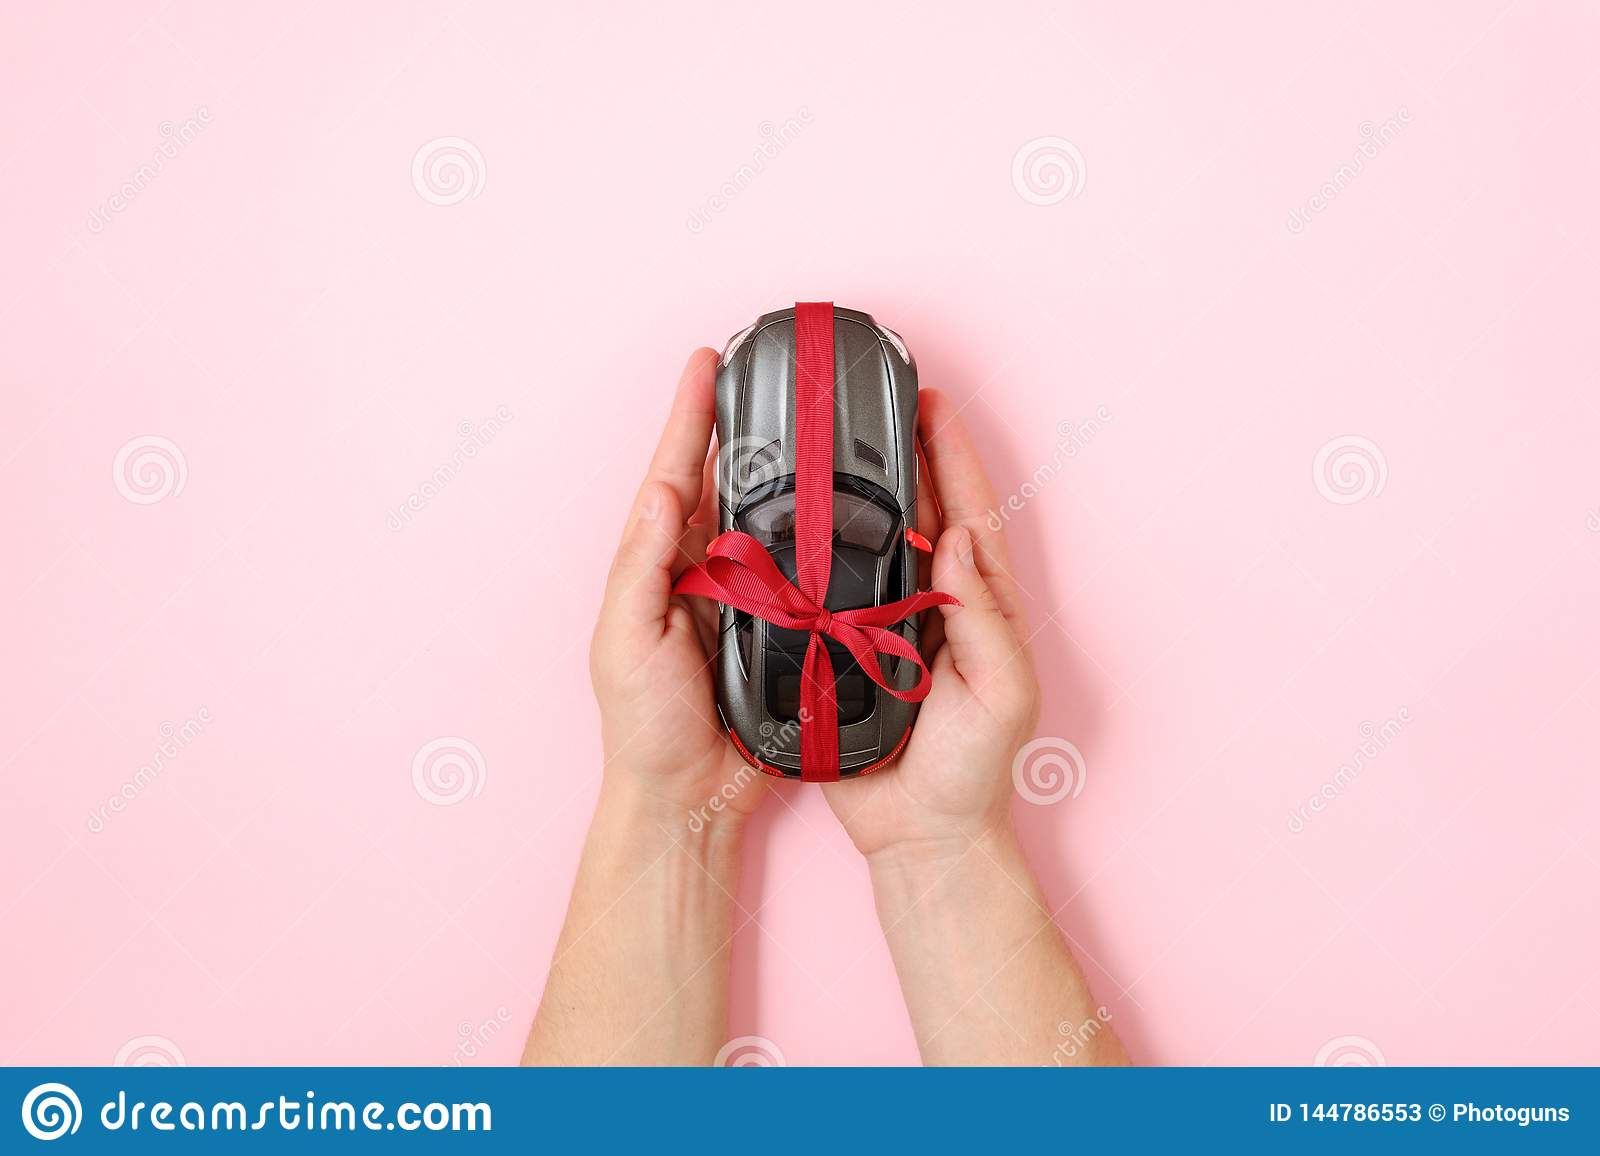 Human hand holding toy car model tied with a red ribbon and bow on pink background. Car insurance services, car for sale, special